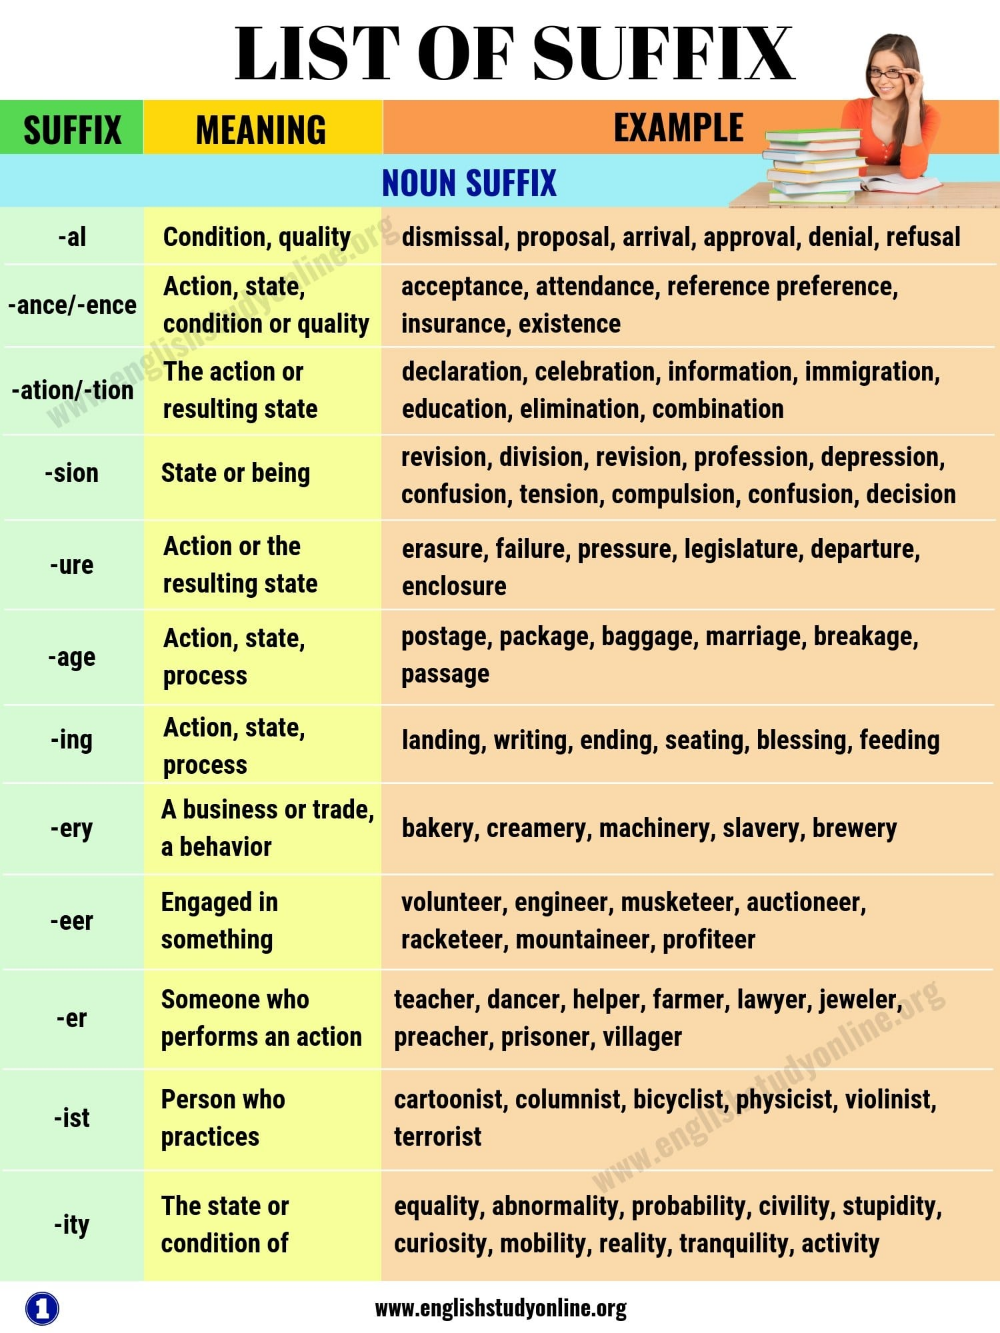 List Of Suffix 50 Most Common Suffixes With Meaning And Examples English Study Online English Study English Grammar Teaching English Grammar [ 1333 x 1000 Pixel ]